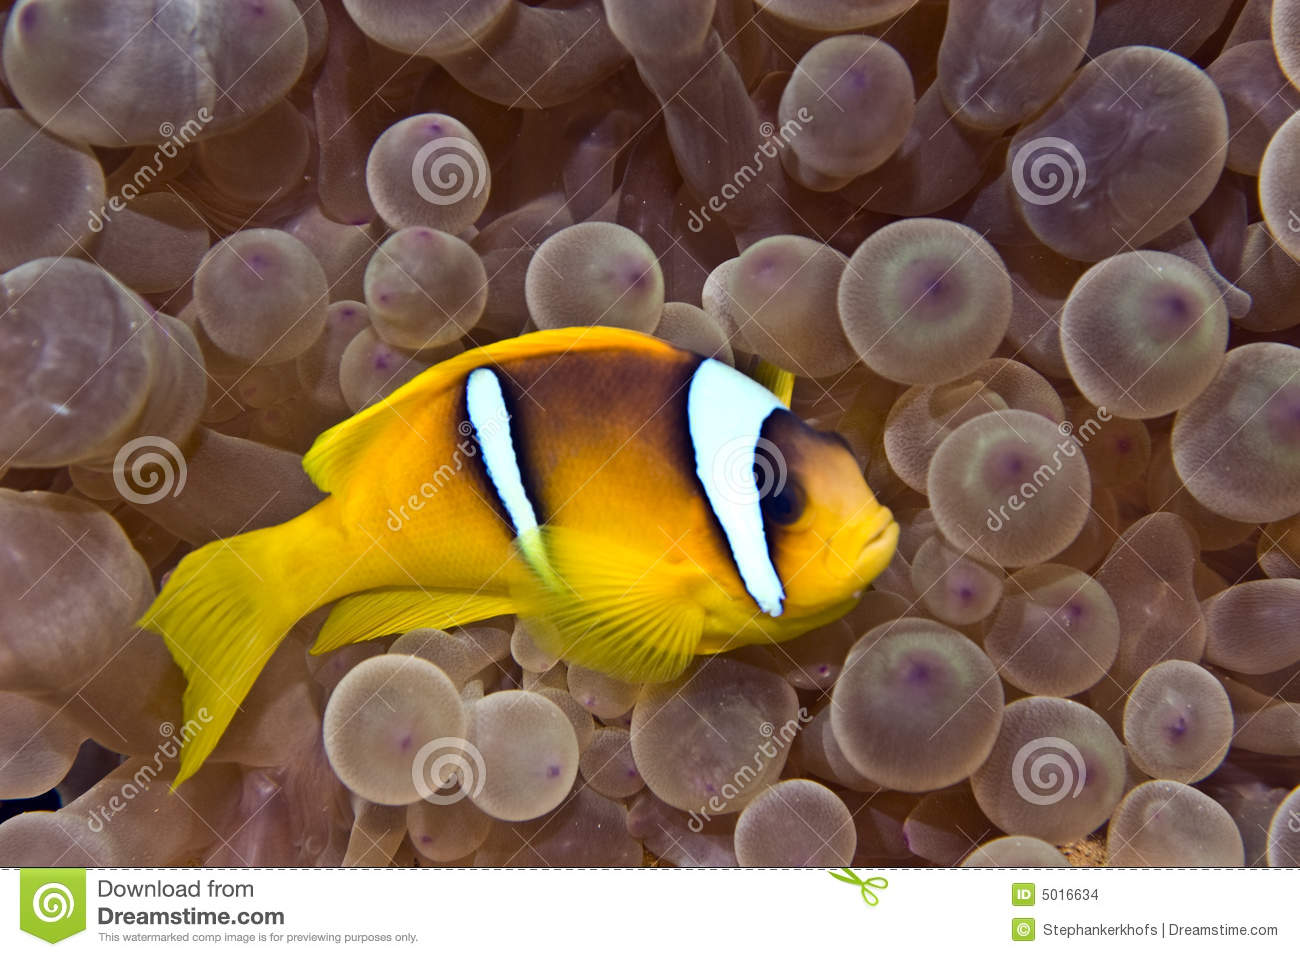 Anemonefish bubbleanemone